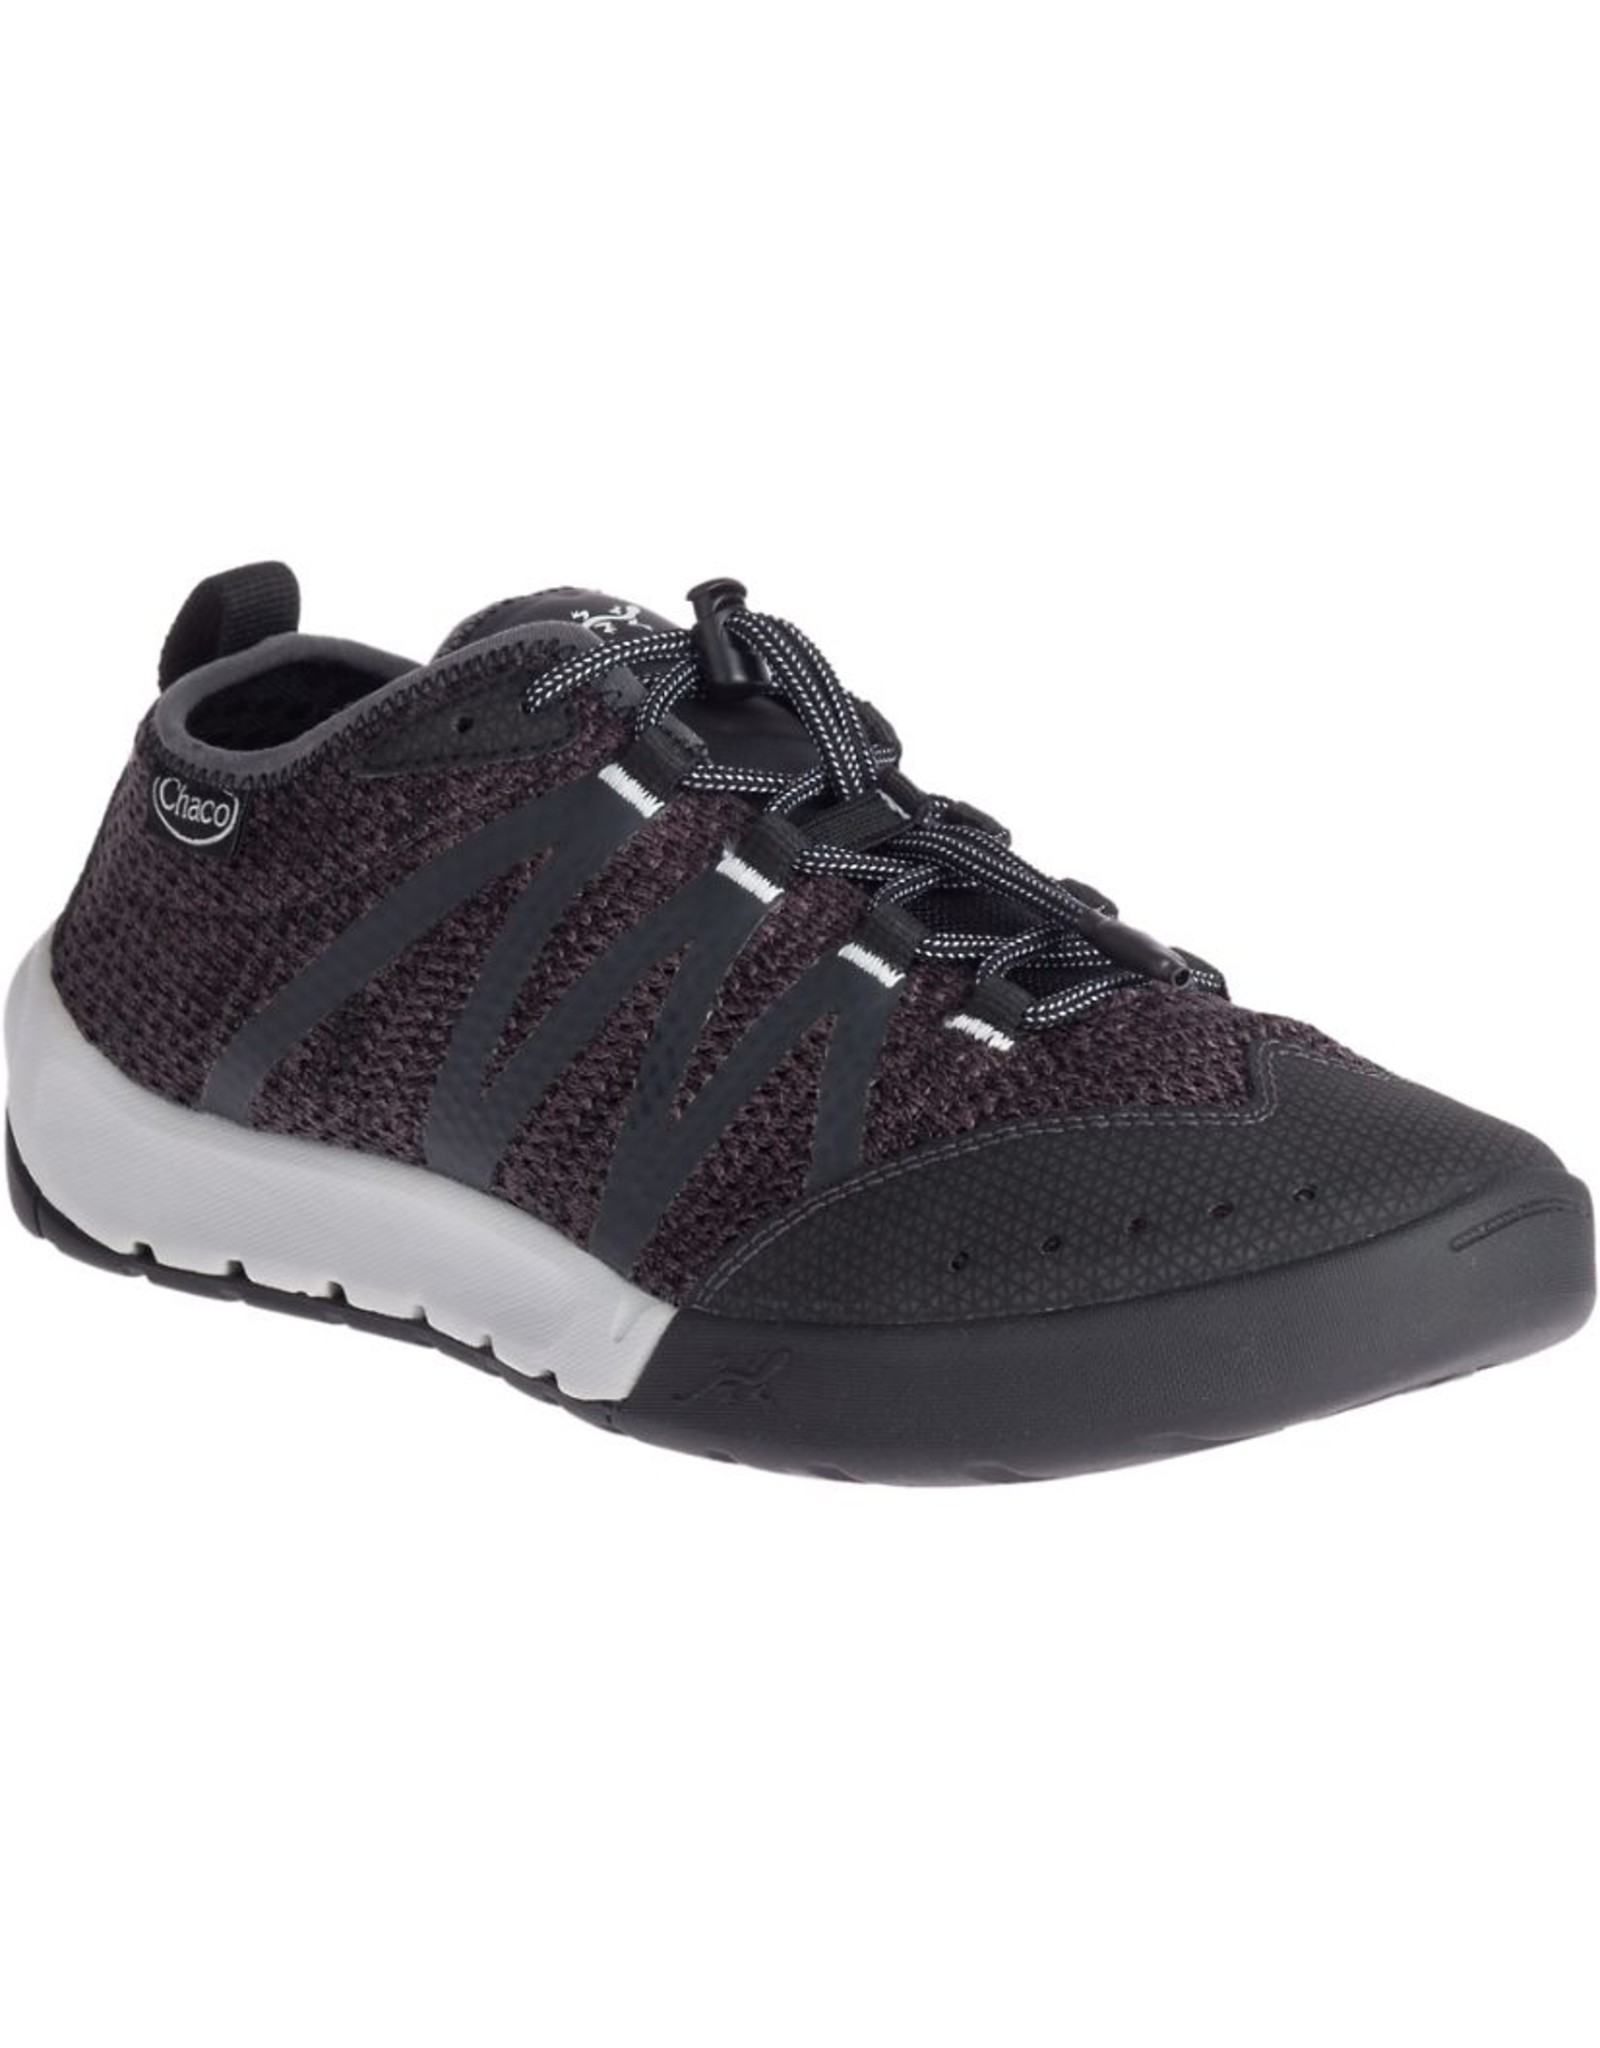 Chaco Chaco Torrent Pro Casual Shoes